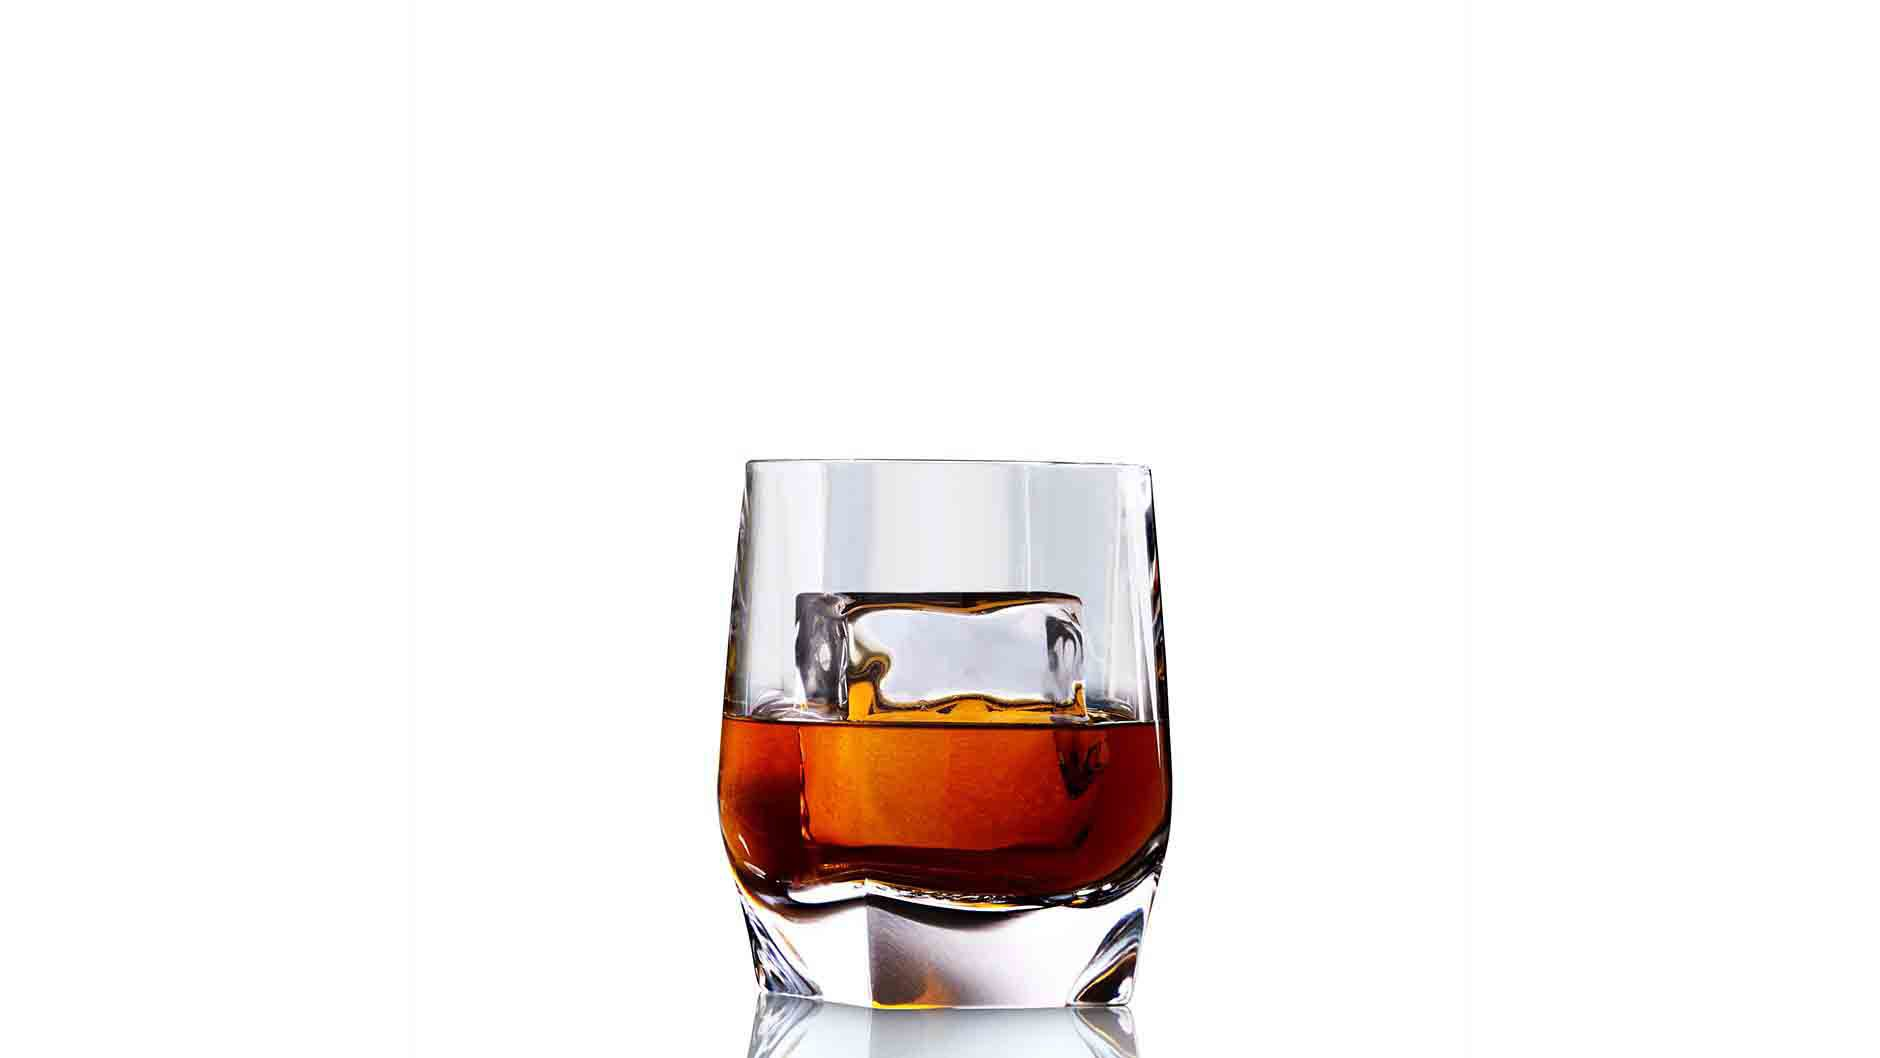 Johnnie Walker Blue Label The Gentleman's Wager in a tumbler